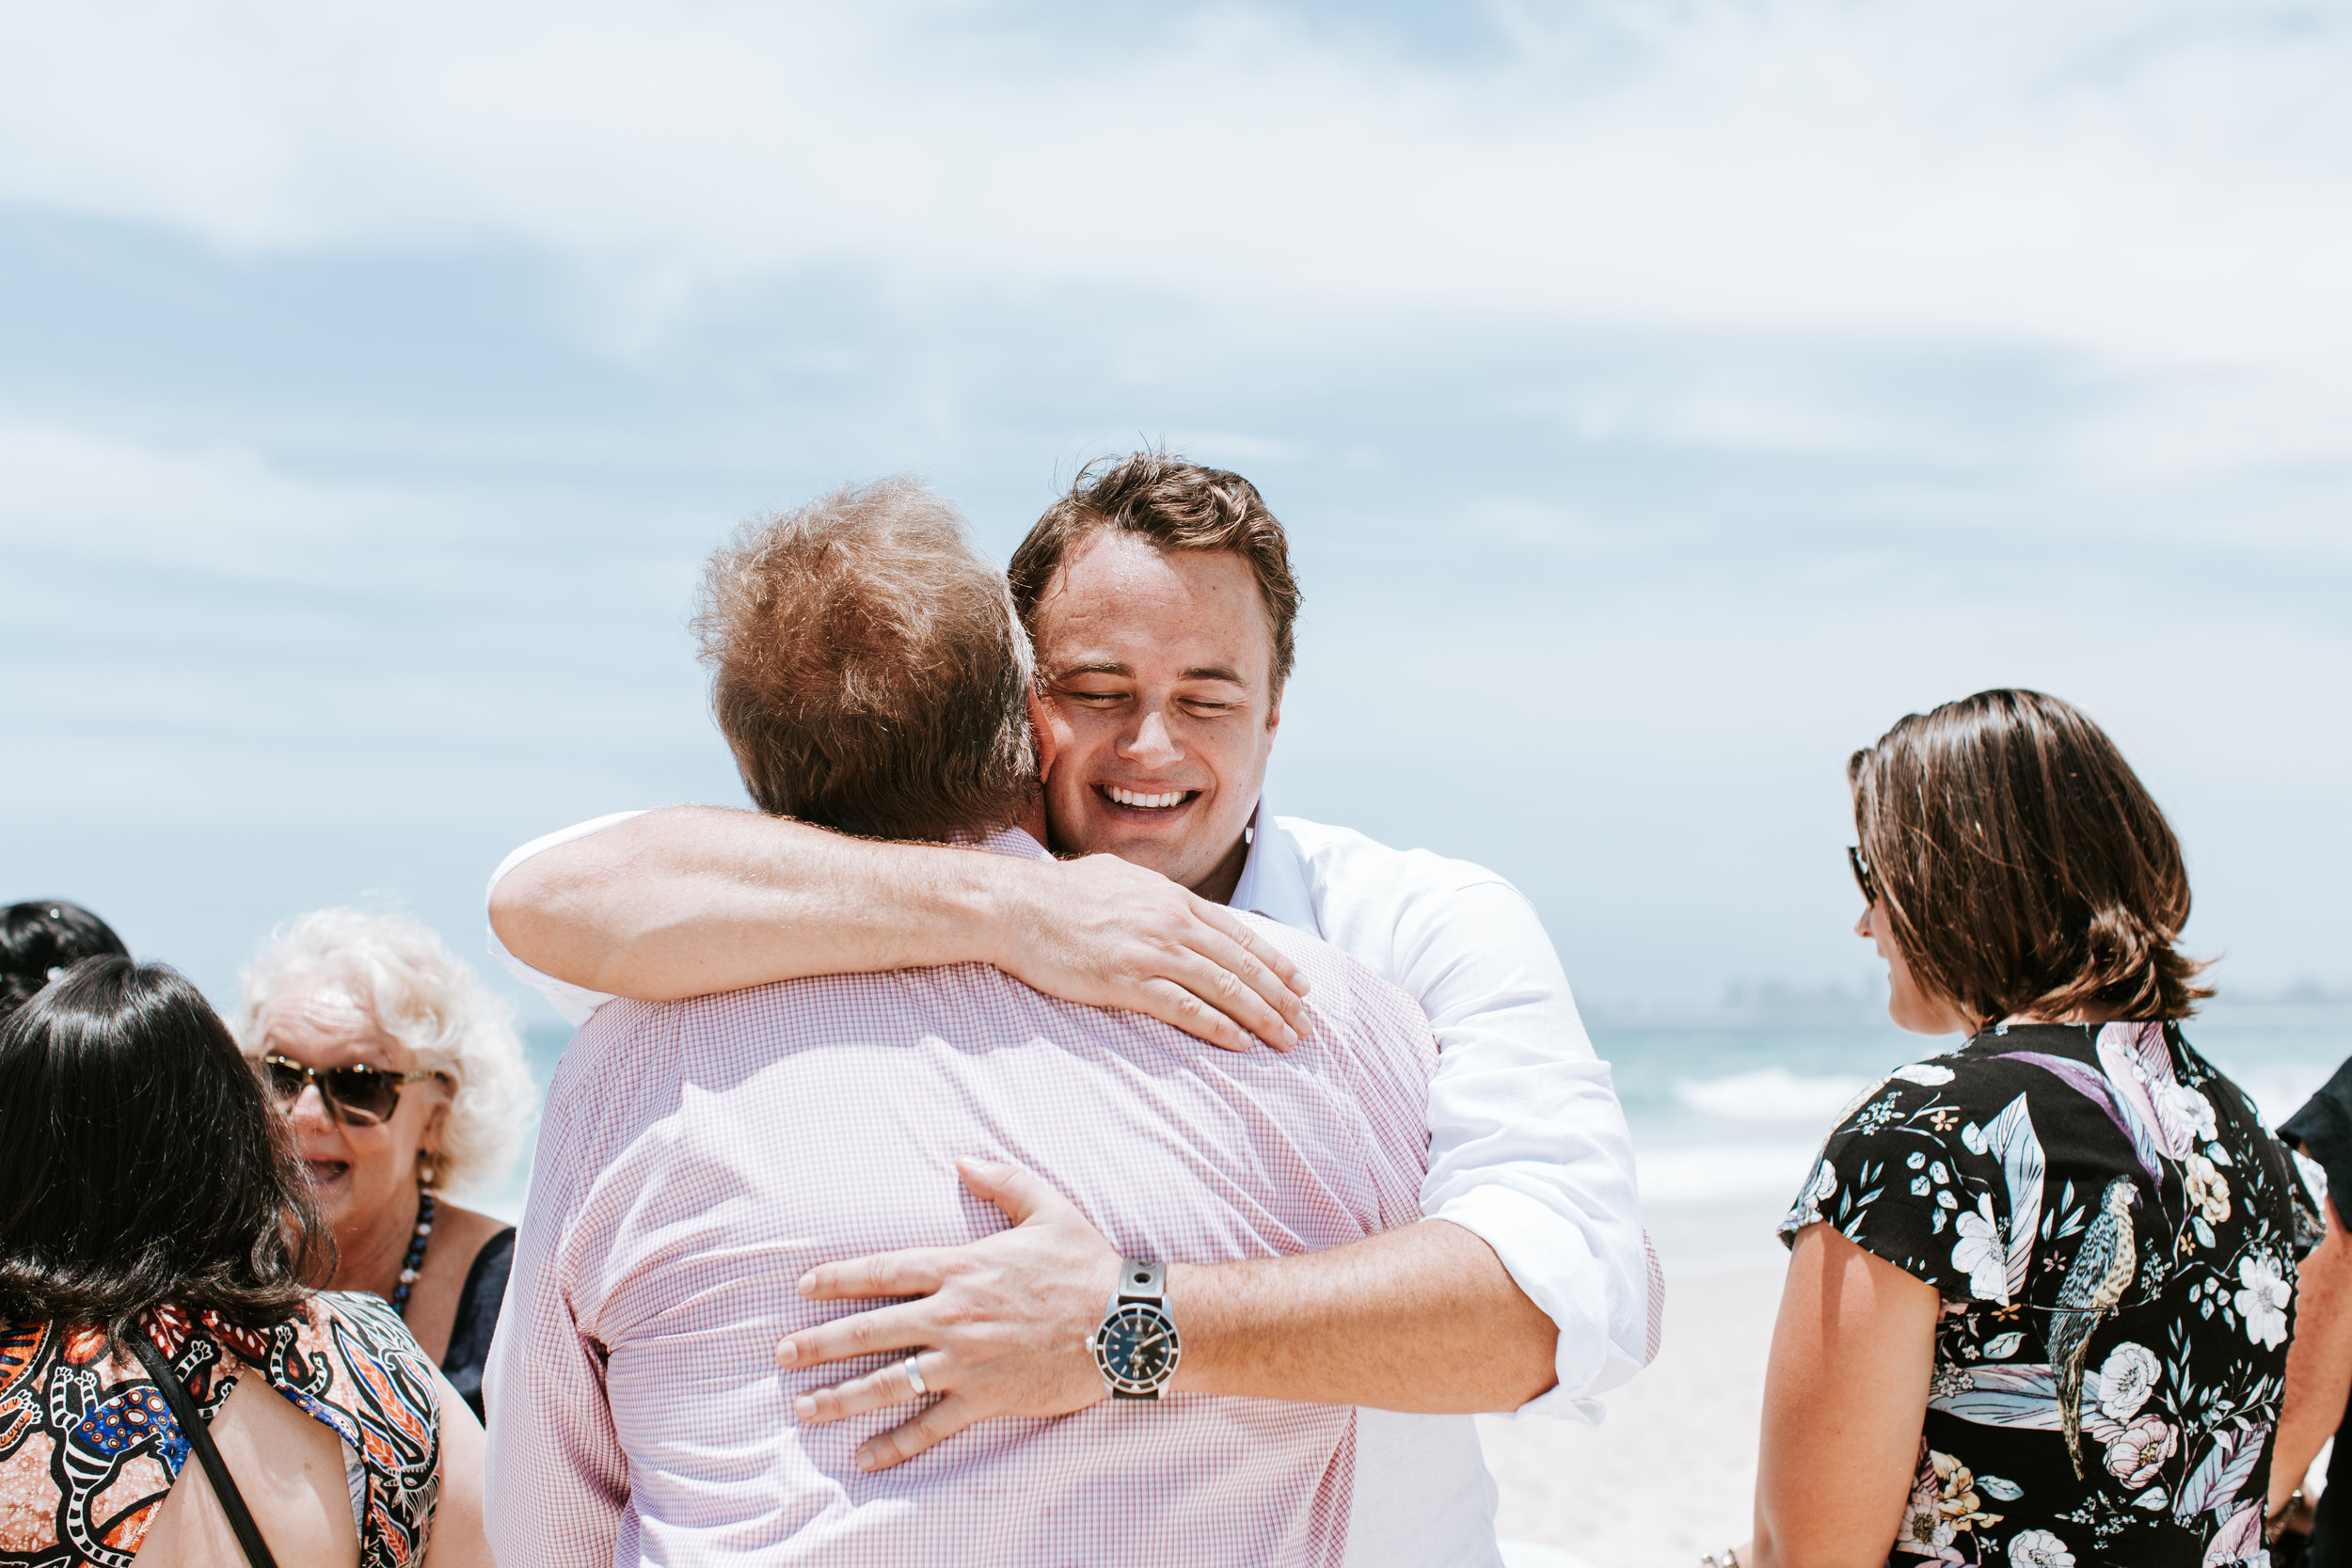 Brisbane family photographer kym renay.walsh.wed 017.jpg